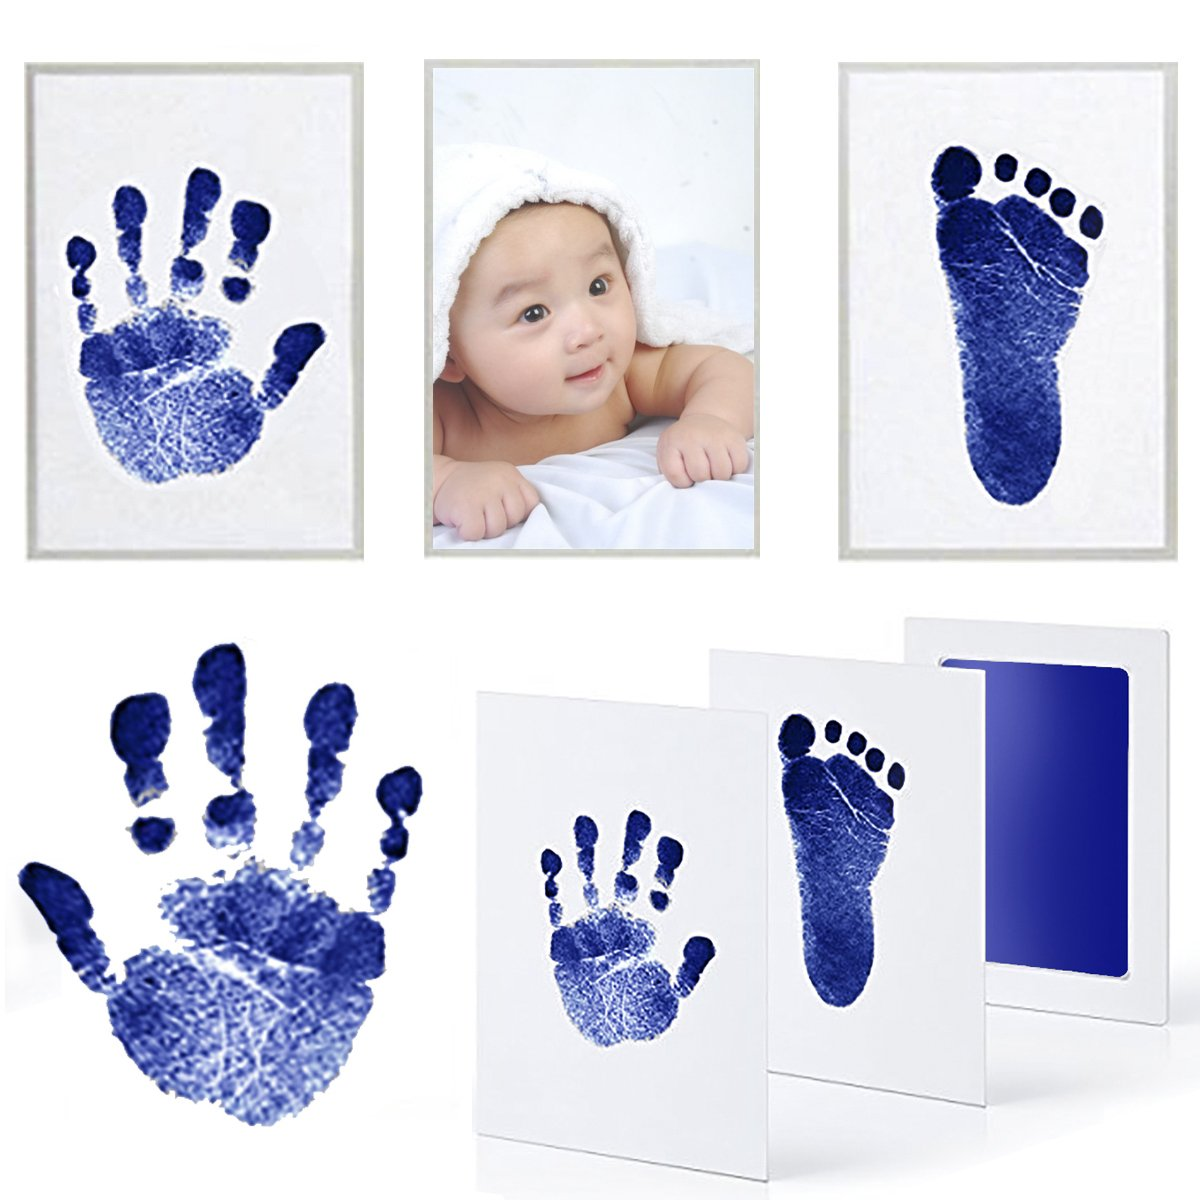 PartyYeah 3 Pcs Baby Ink Pad for Baby Footprints Hand Prints and Fingerprints Kit with 3 Extra Large Ink Pads and 6 Imprint Cards Perfect Keep Baby Memory Baby Shower Gift (Type-1, Blue)